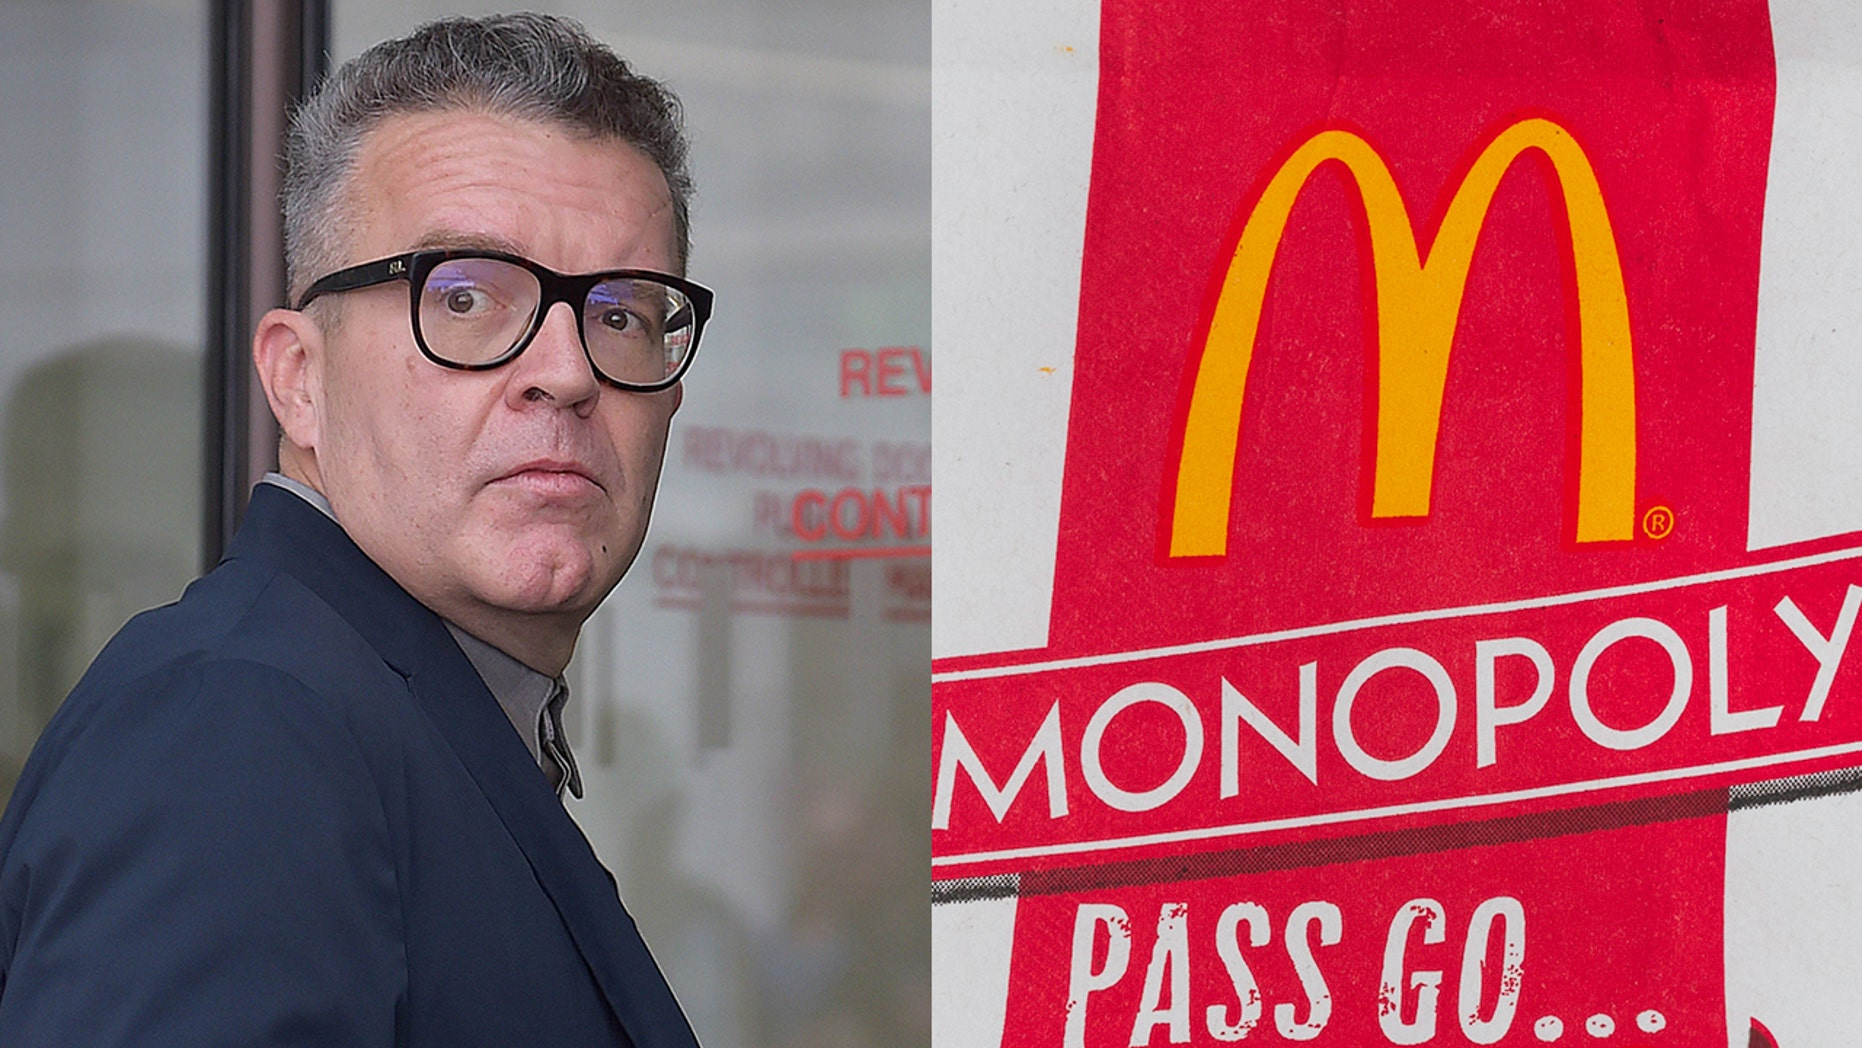 Tom Watson, deputy leader of the Labour party, wrote a letter to McDonald's U.K. CEO Paul Pomroy, urging him to cancel the campaign.